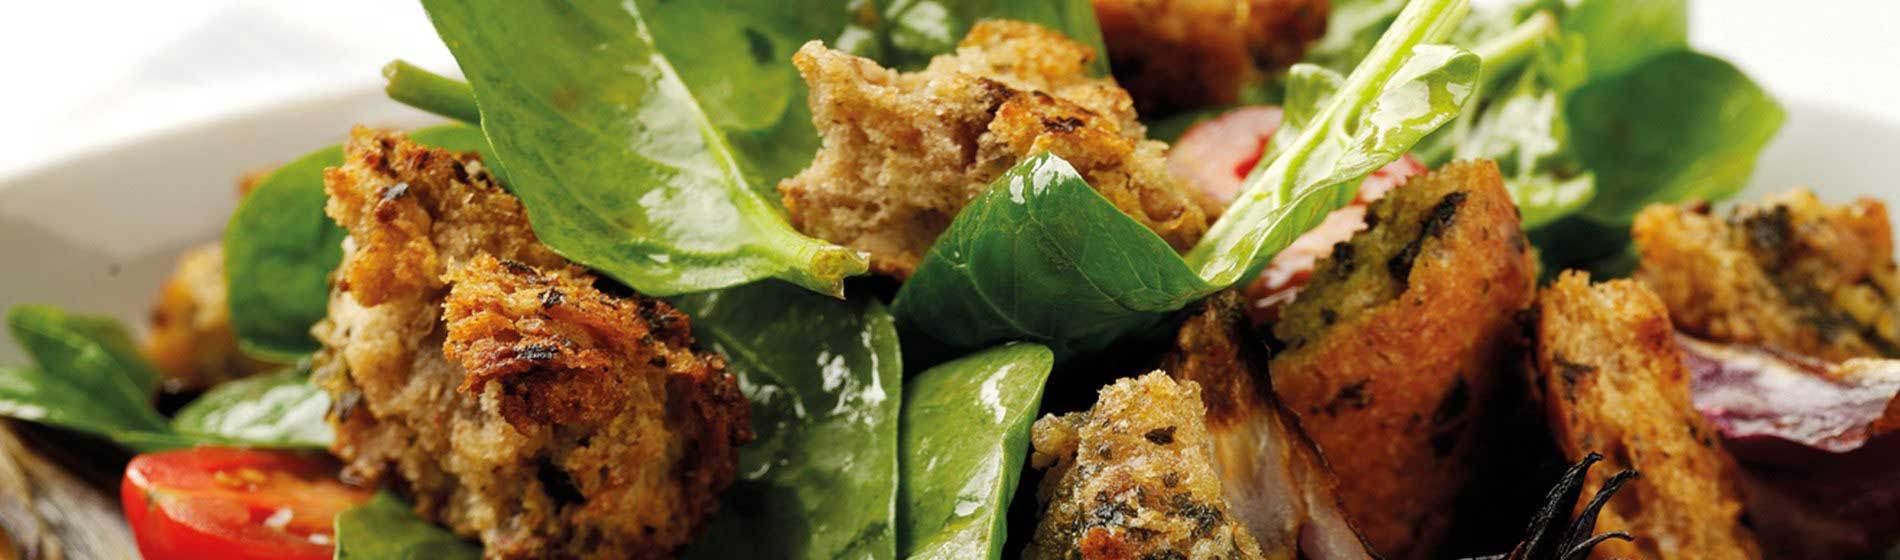 Winter Spinach Cherry Tomato and Red Onion Salad with Warm Pesto Wholegrain Croutons